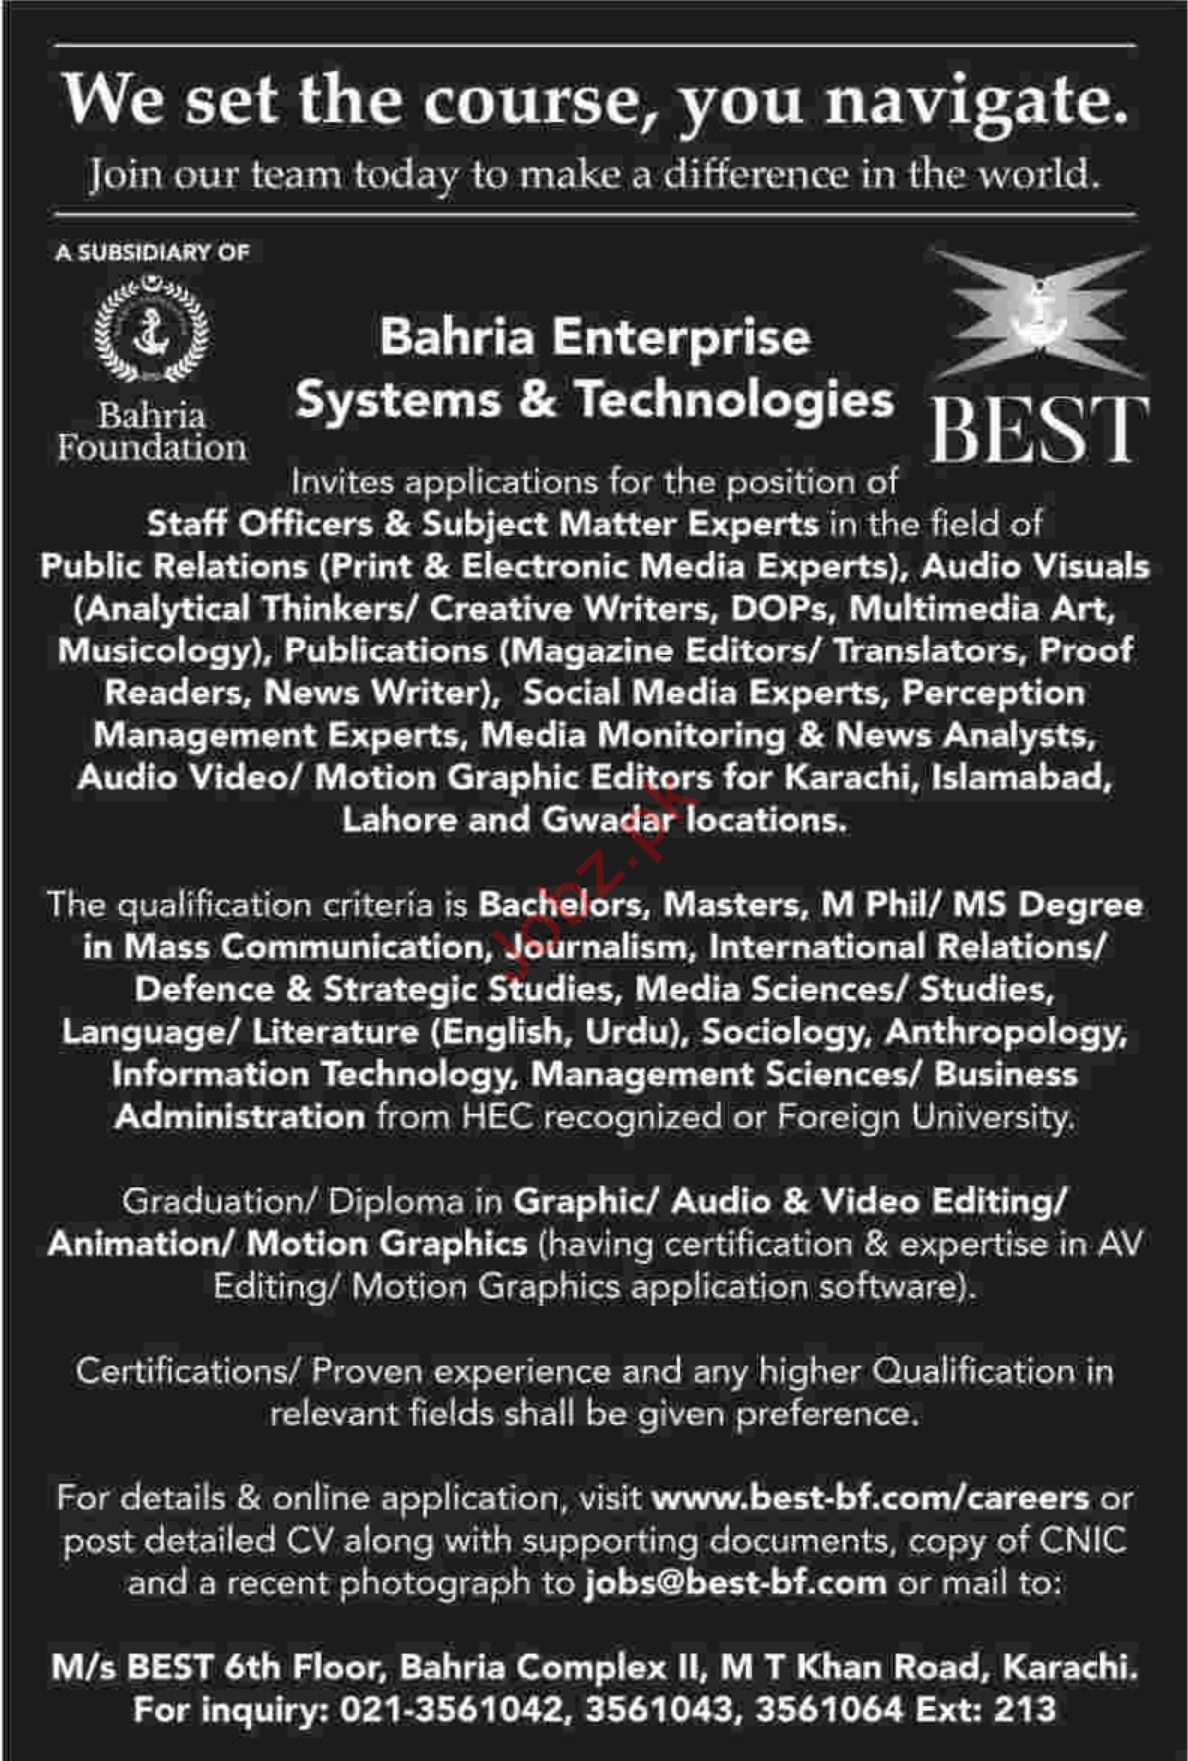 Bahria Foundation Sales Officers & Subject Matter Expert Job